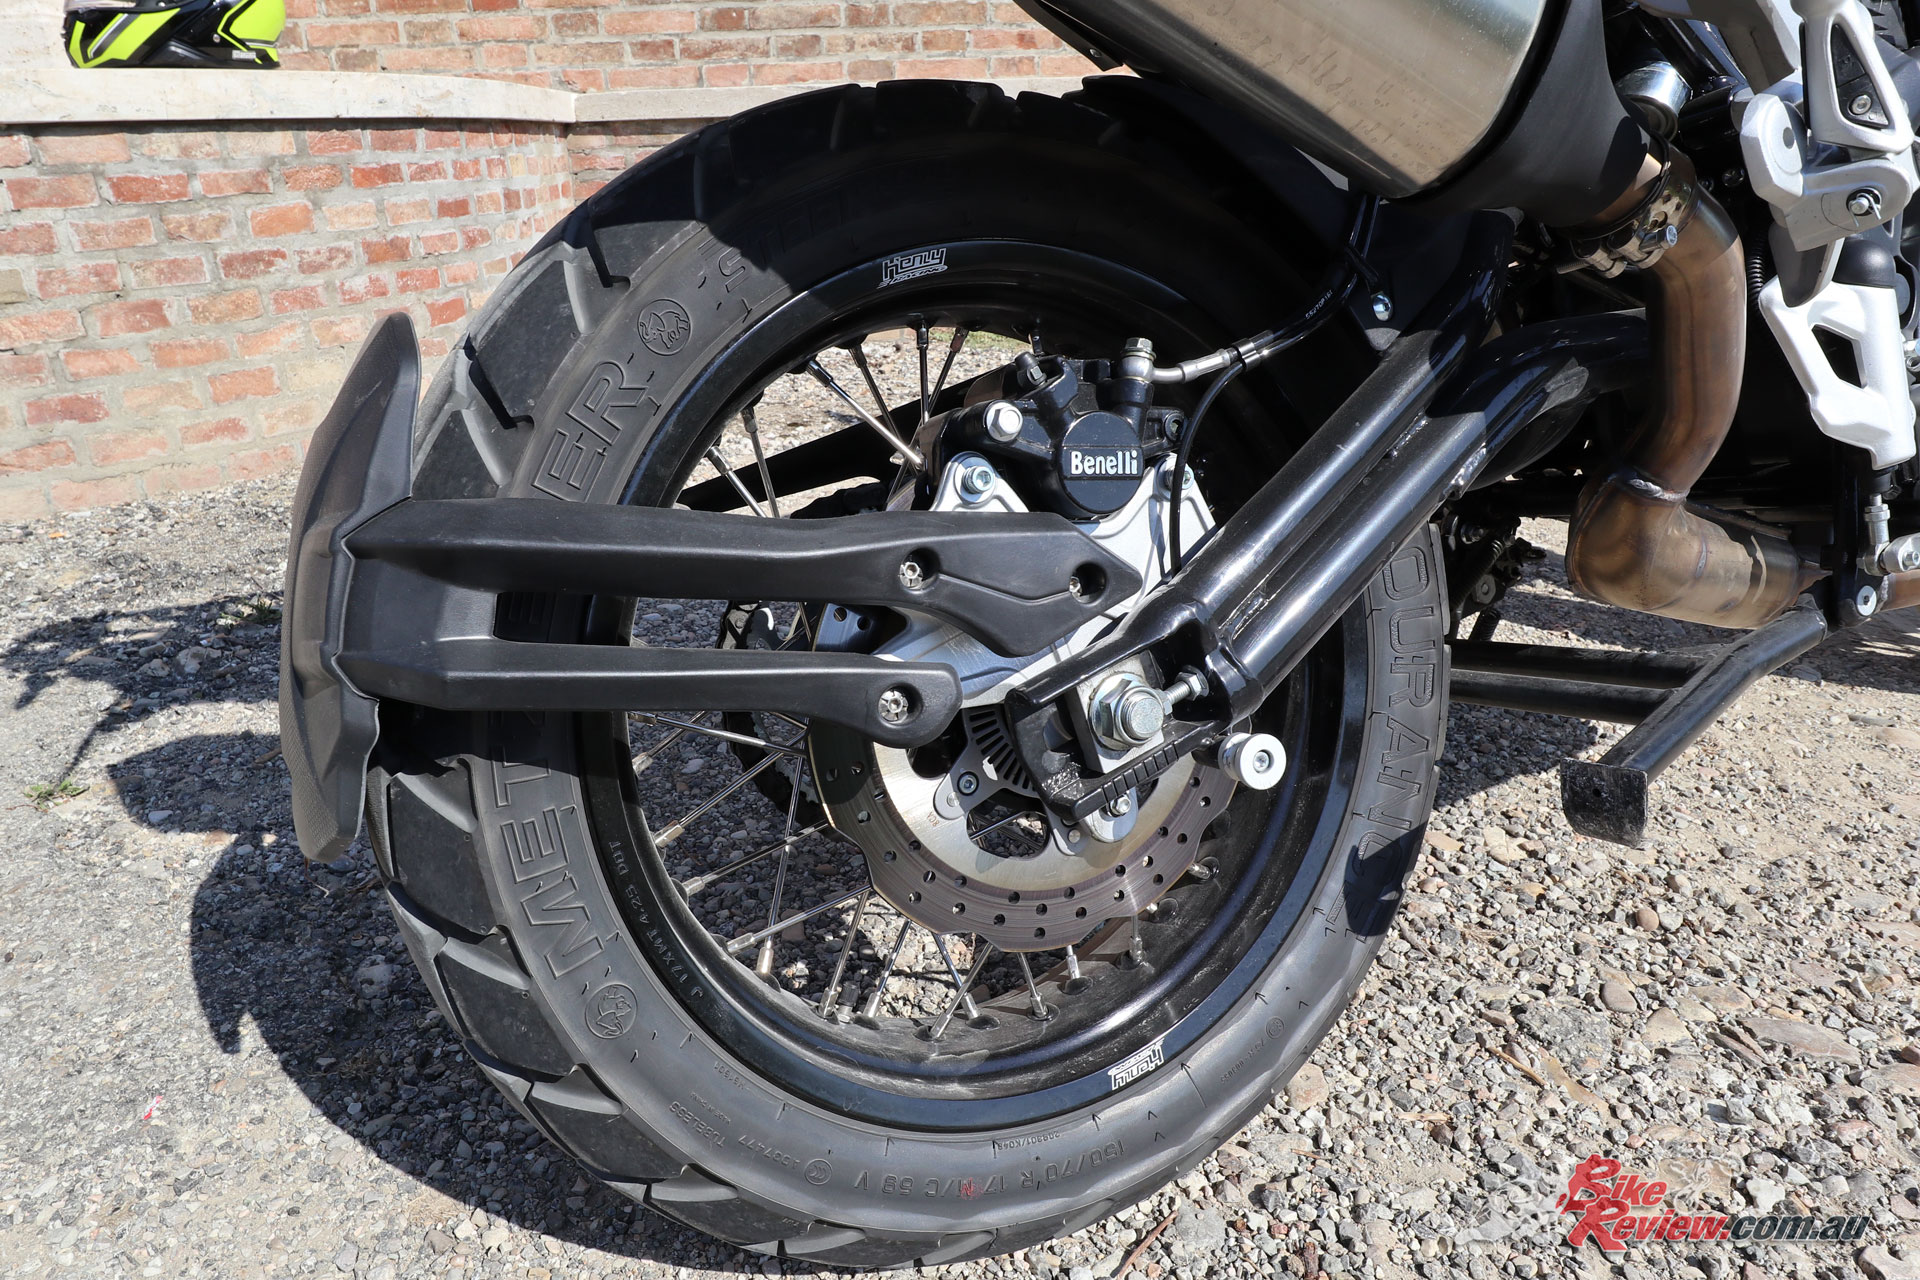 A fully adjustable rear shock, with 50mm stroke for 170mm rear travel joins the revised forks, in offering a balanced and predictable ride. The wheelbase is also reduced to 1505mm.